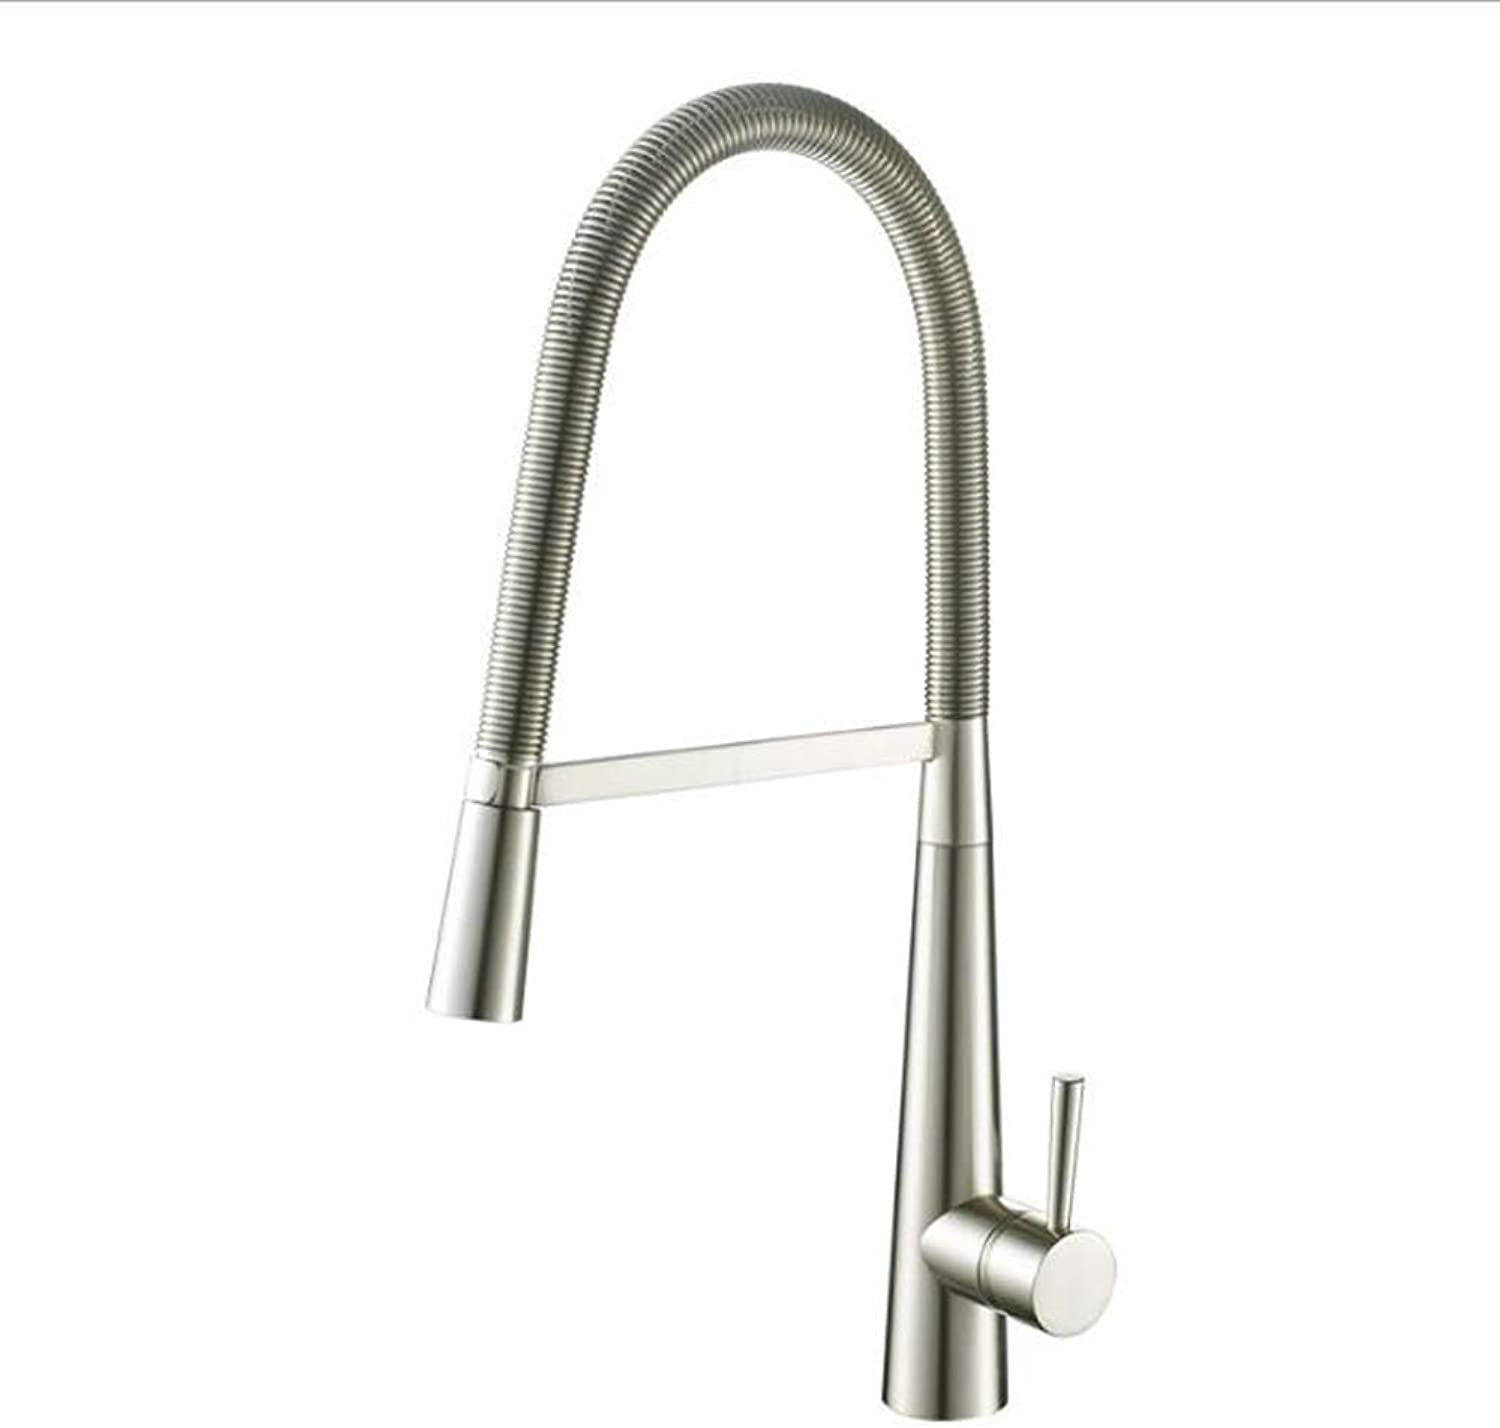 360° Swivel Spring Kitchen Mixer Tap Nickel Brushed Chrome Leadless Brass Faucet Hot and Cold Kitchen Sink Tap,SilverFaucet